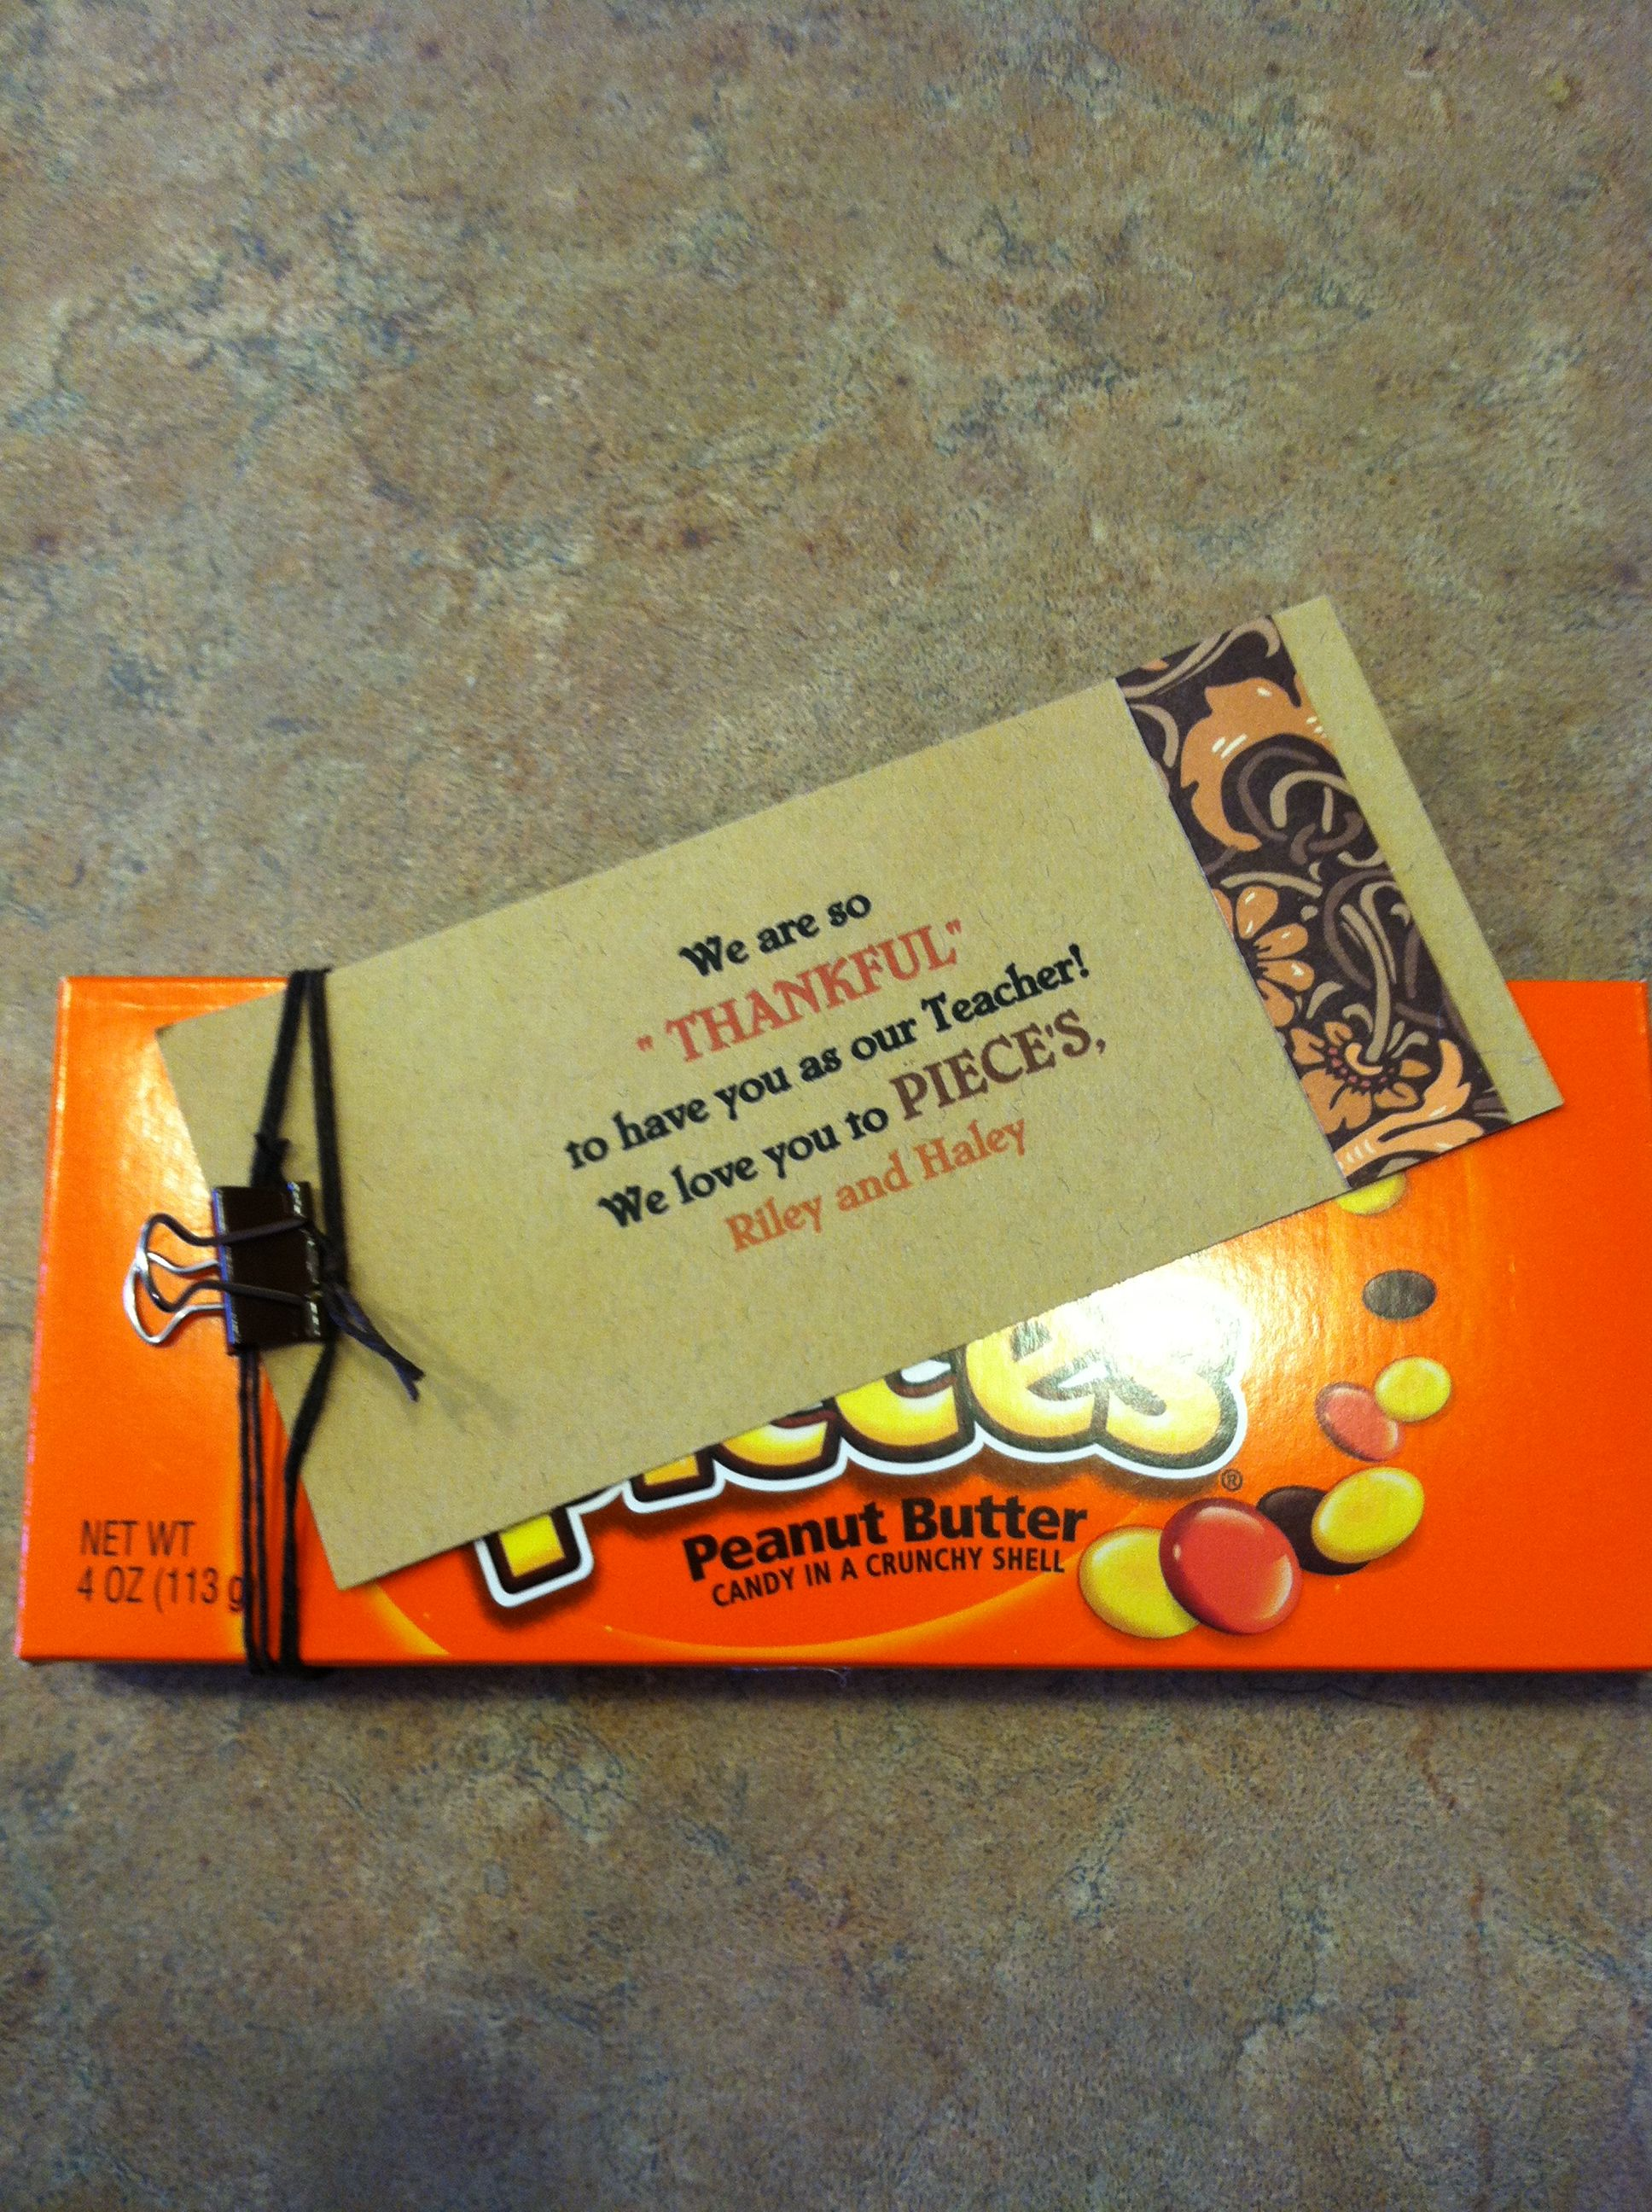 Beach Pail Party Favors Saying Thank You For Coming: Gifts For Teacher For Thanksgiving! Simple! Reese's Pieces